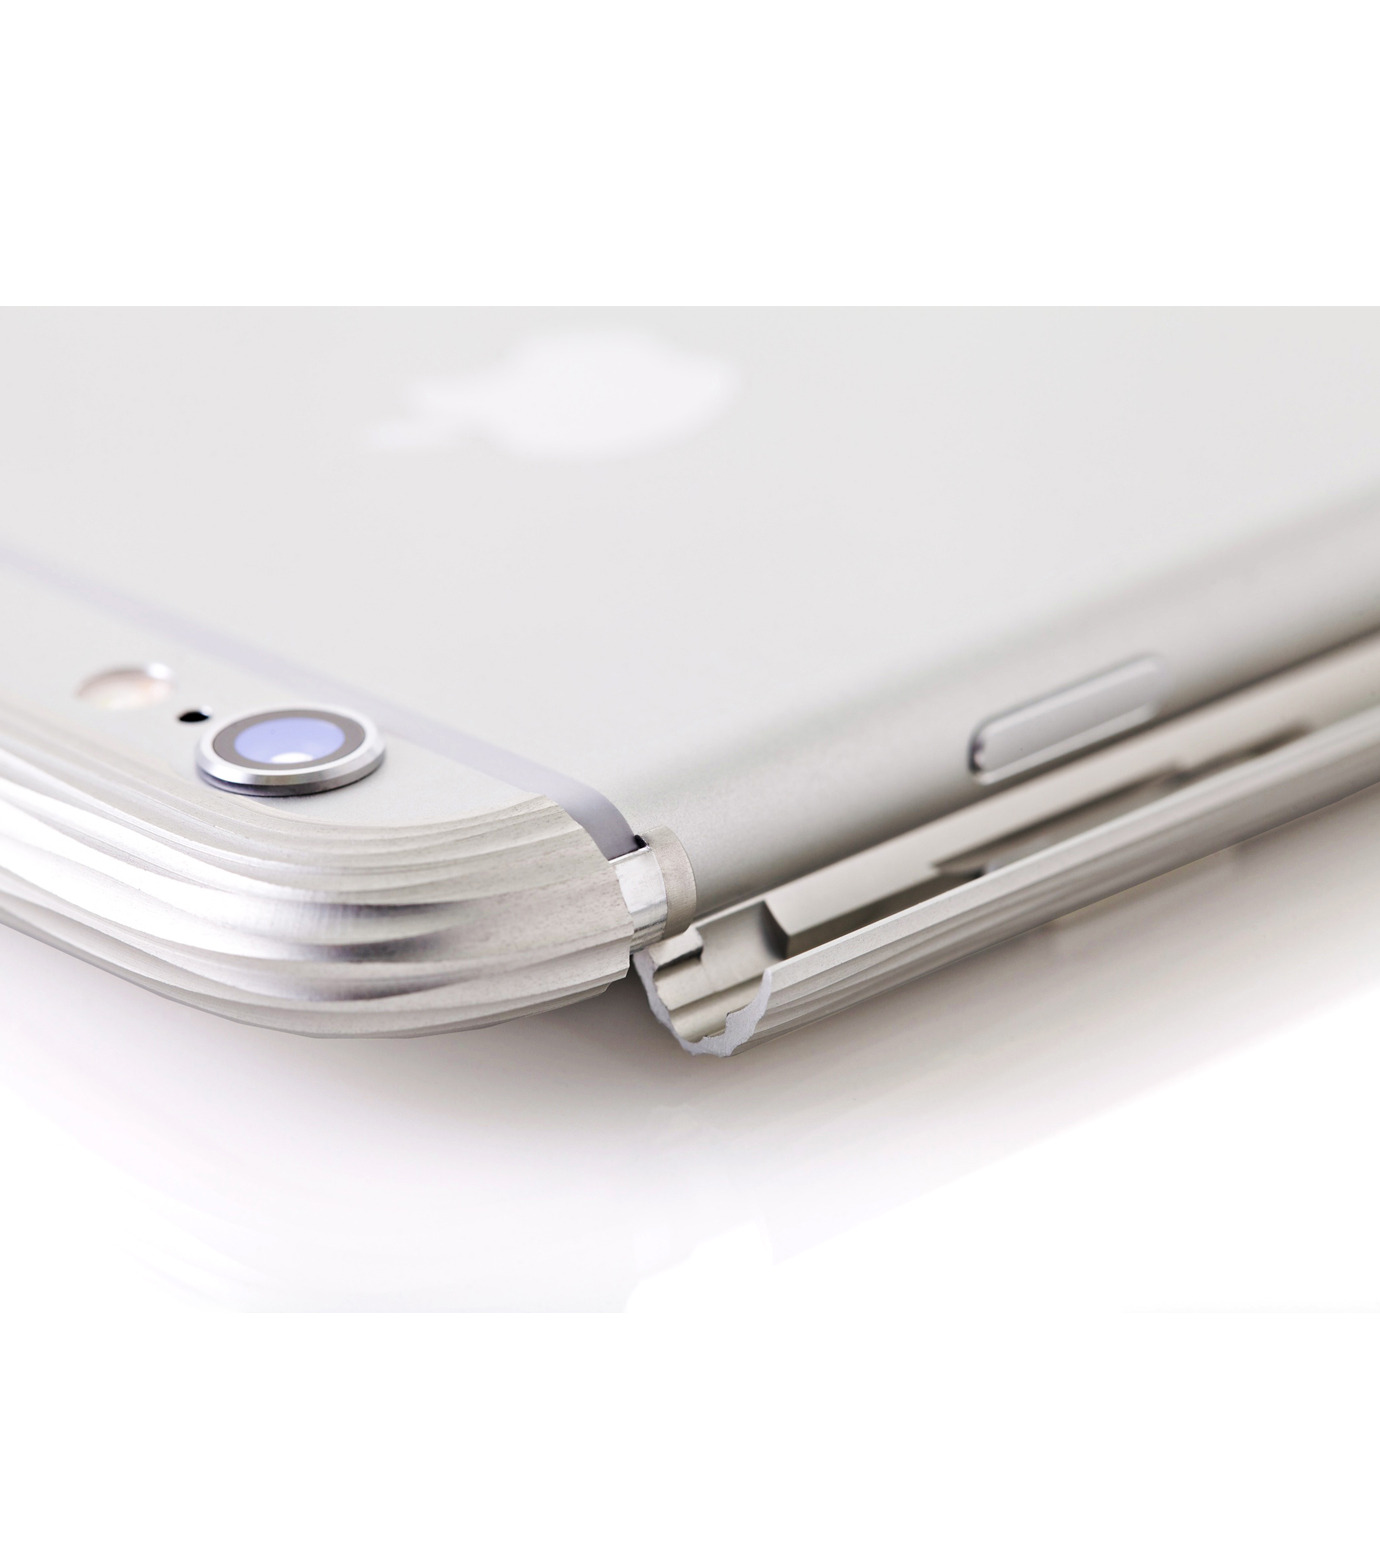 SQUAIR(スクエア)のThe Dimple for iPhone6-SILVER(ケースiphone6/6s/case iphone6/6s)-SQDMP620-SLV-1 拡大詳細画像4